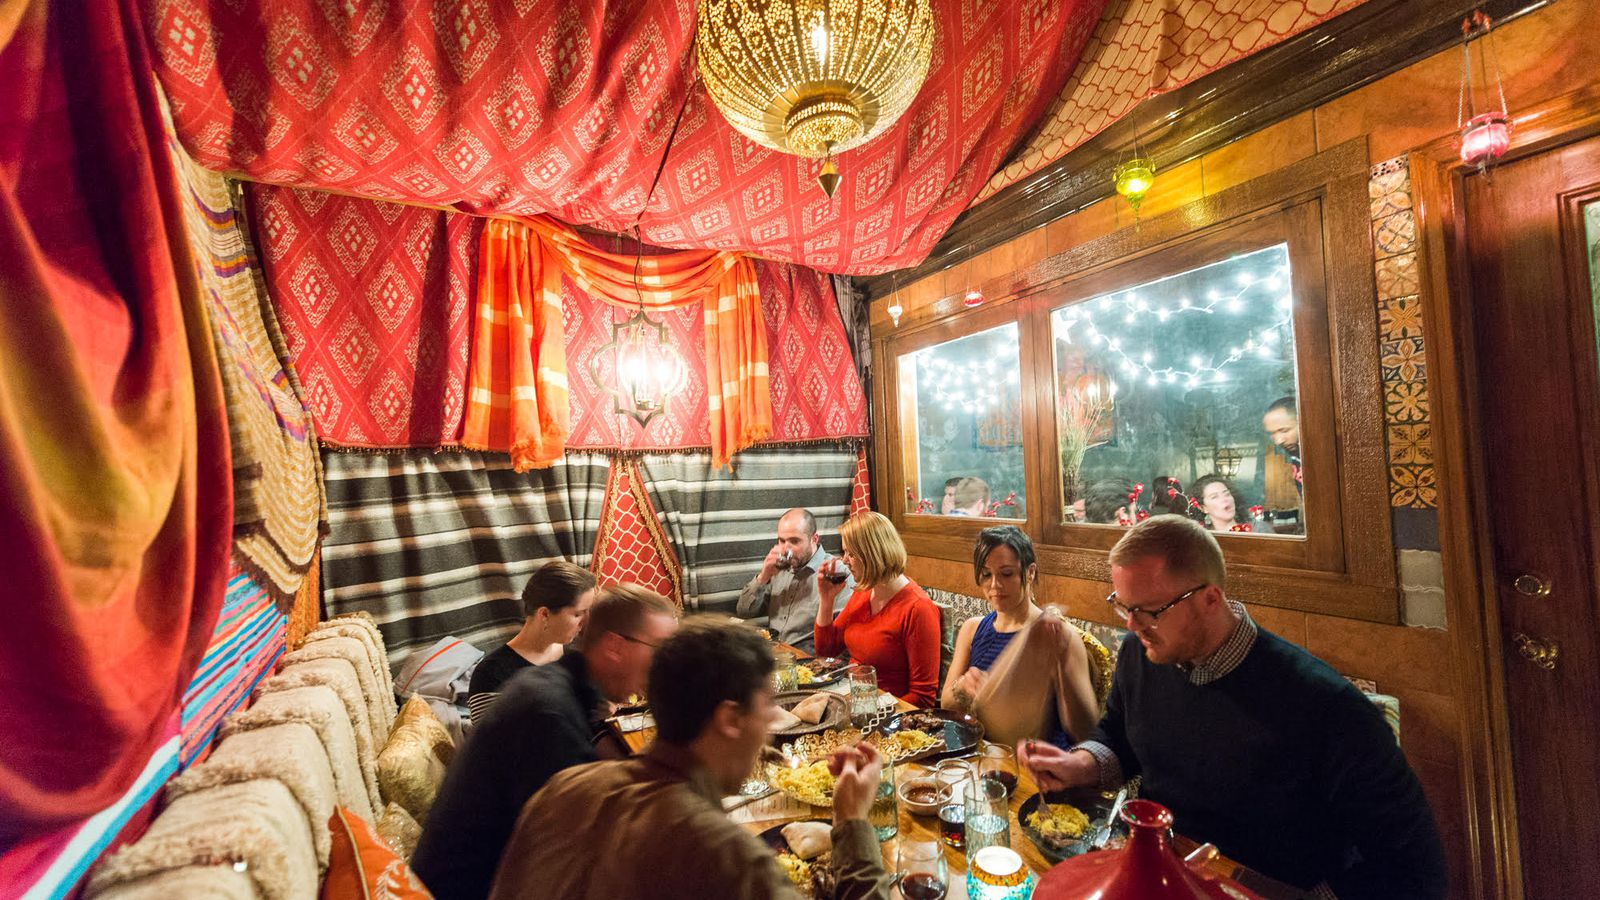 Go Inside the Bedouin Tent A New Dining Experience at